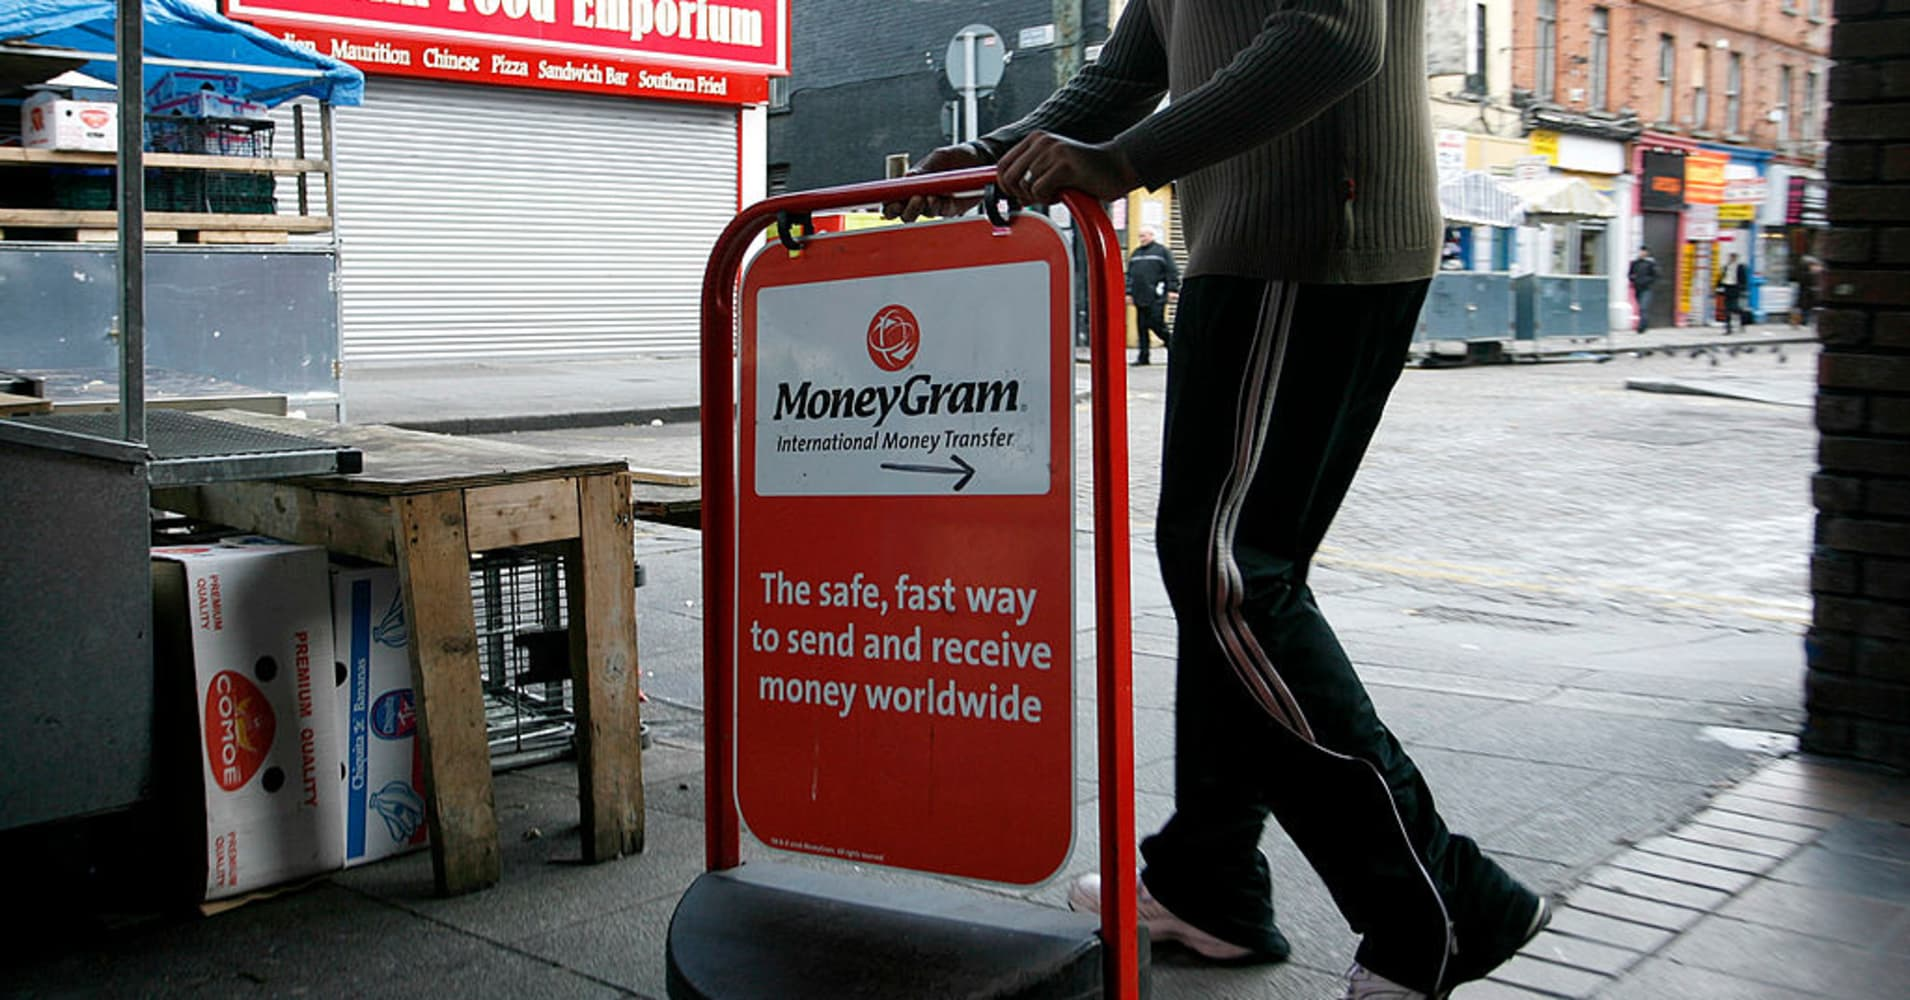 Ant Financial's proposed MoneyGram takeover will be 'win-win' for both: MoneyGram CEO